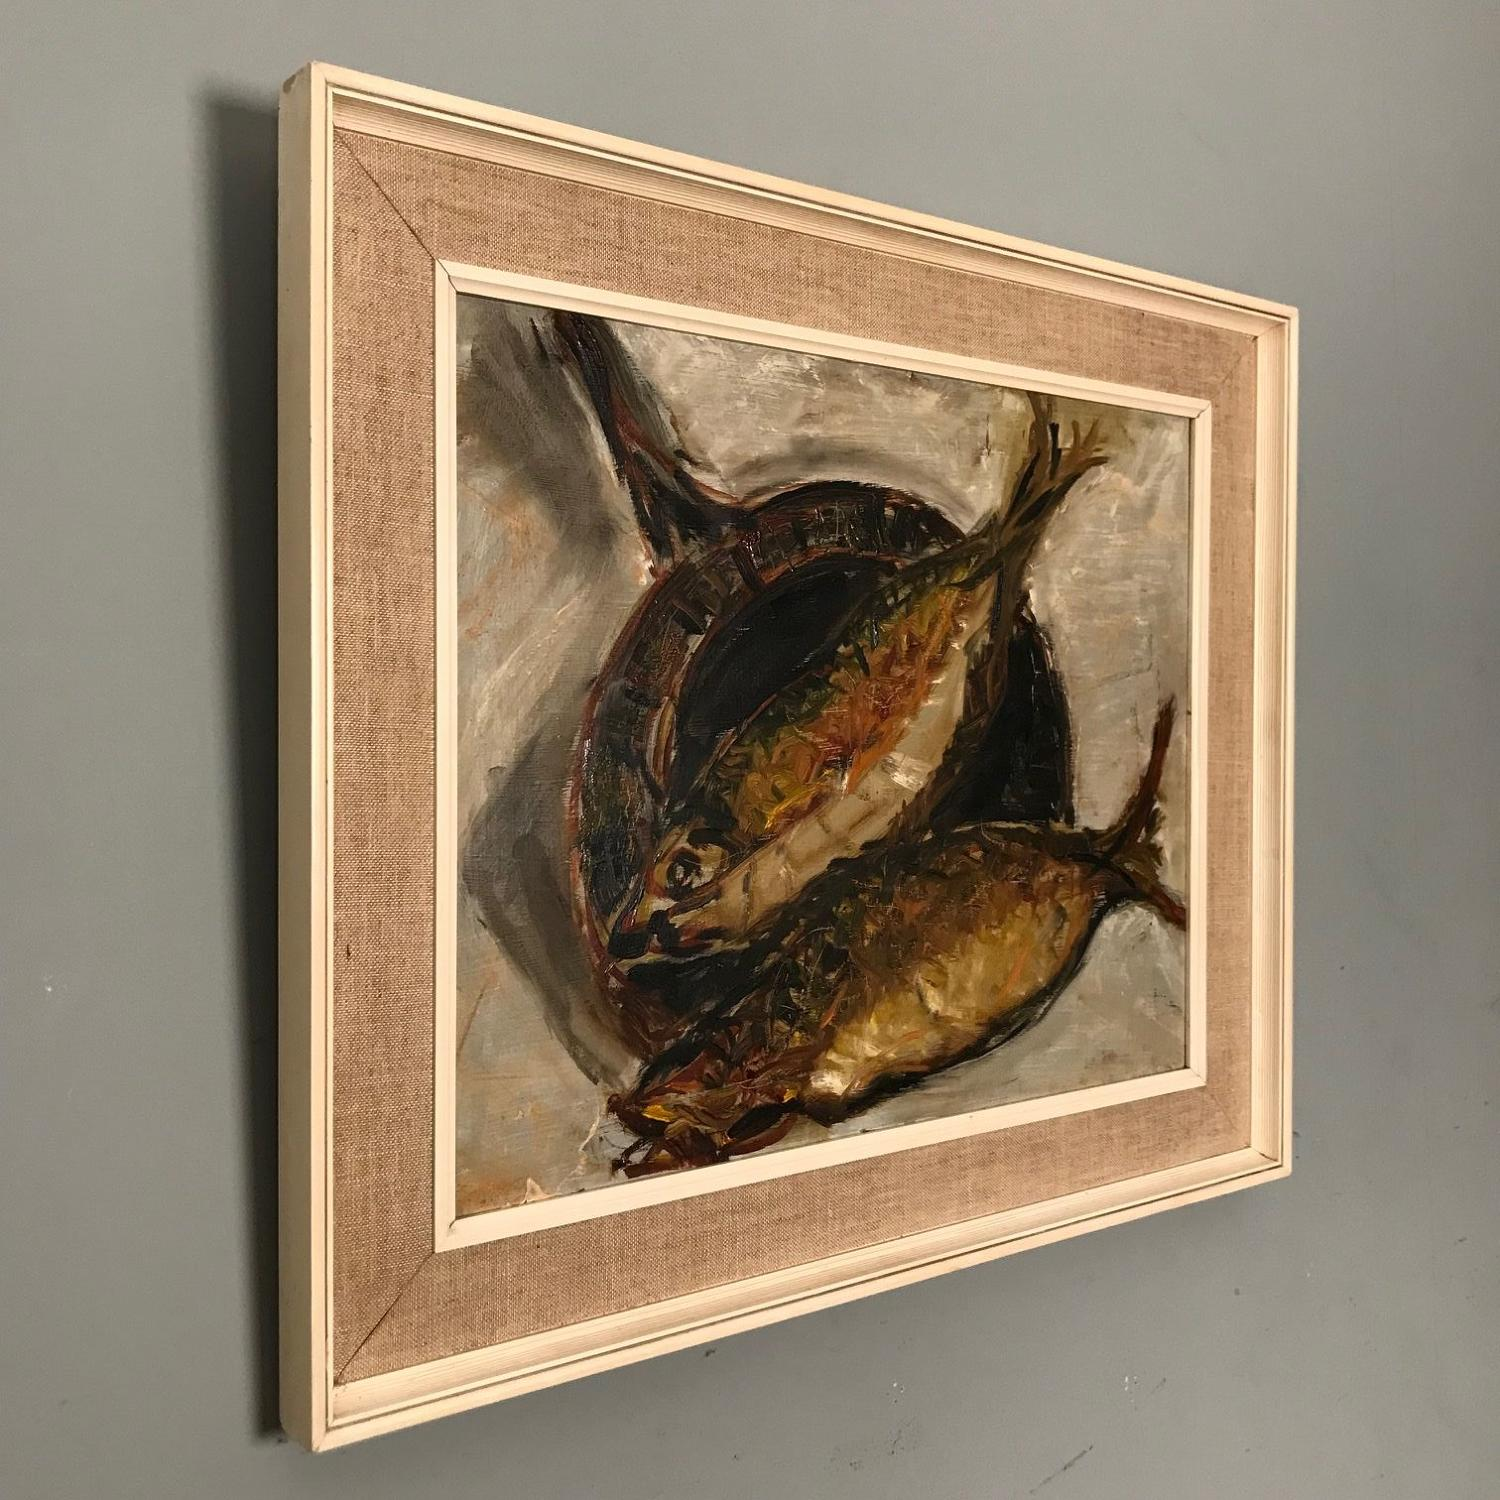 Frying Kippers - Oil on Board